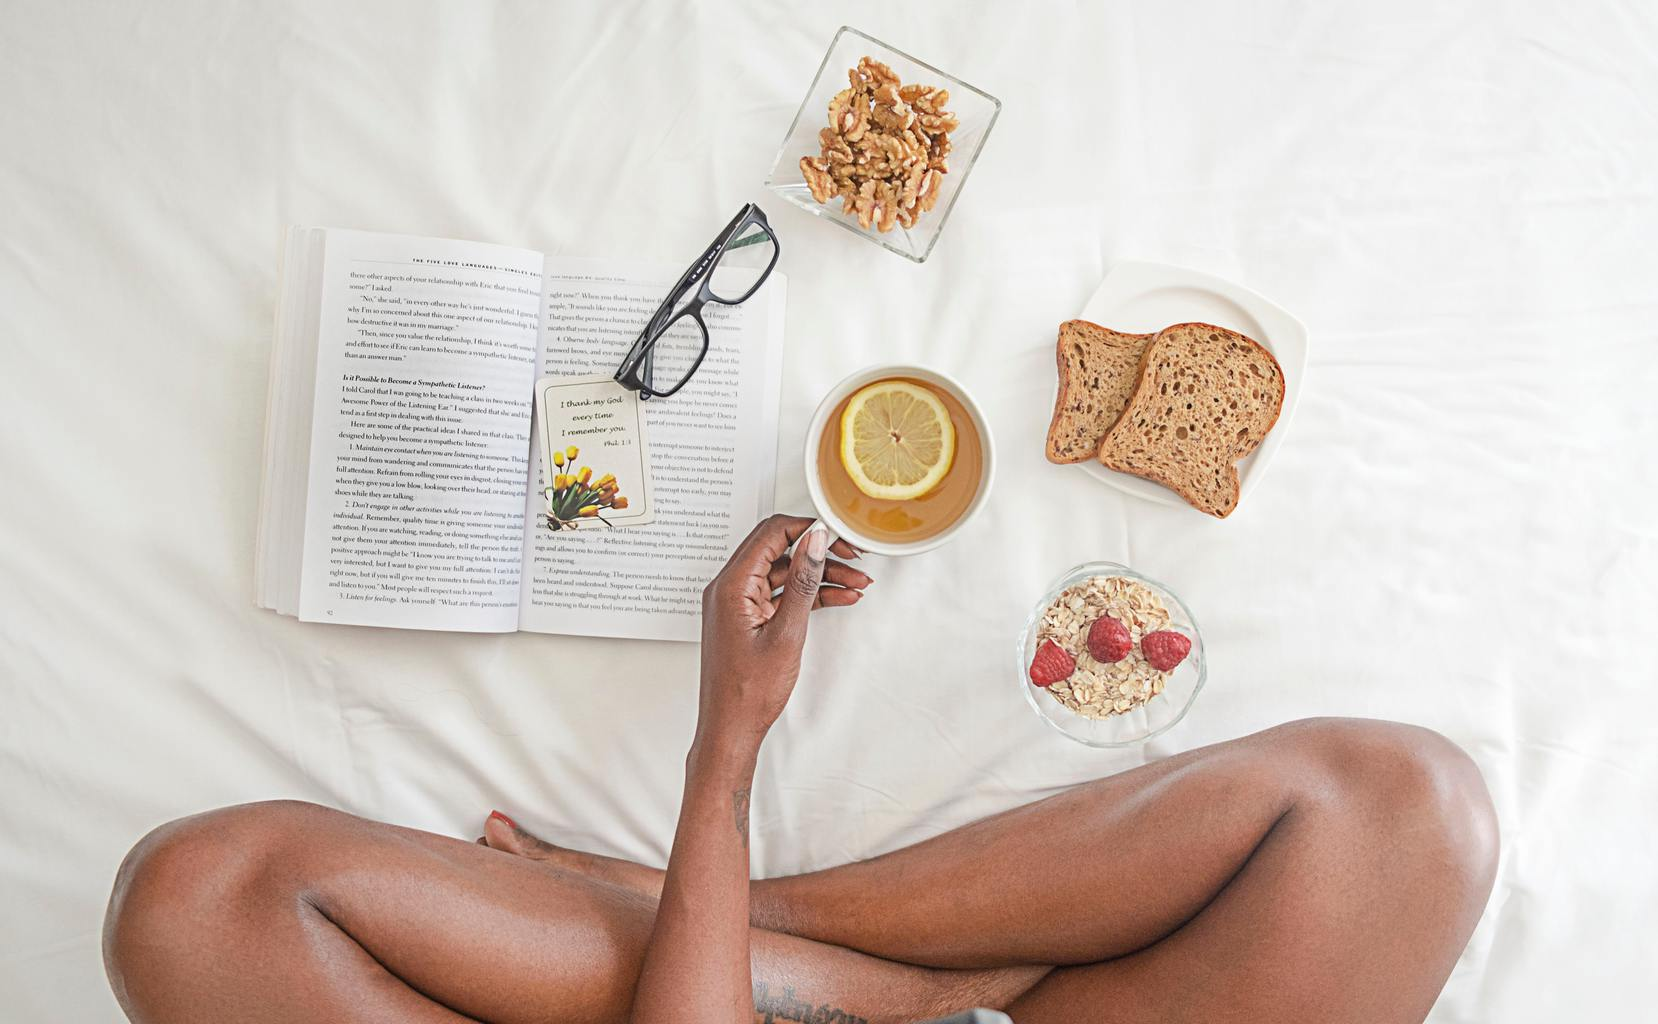 person-bed-book-food-glasses